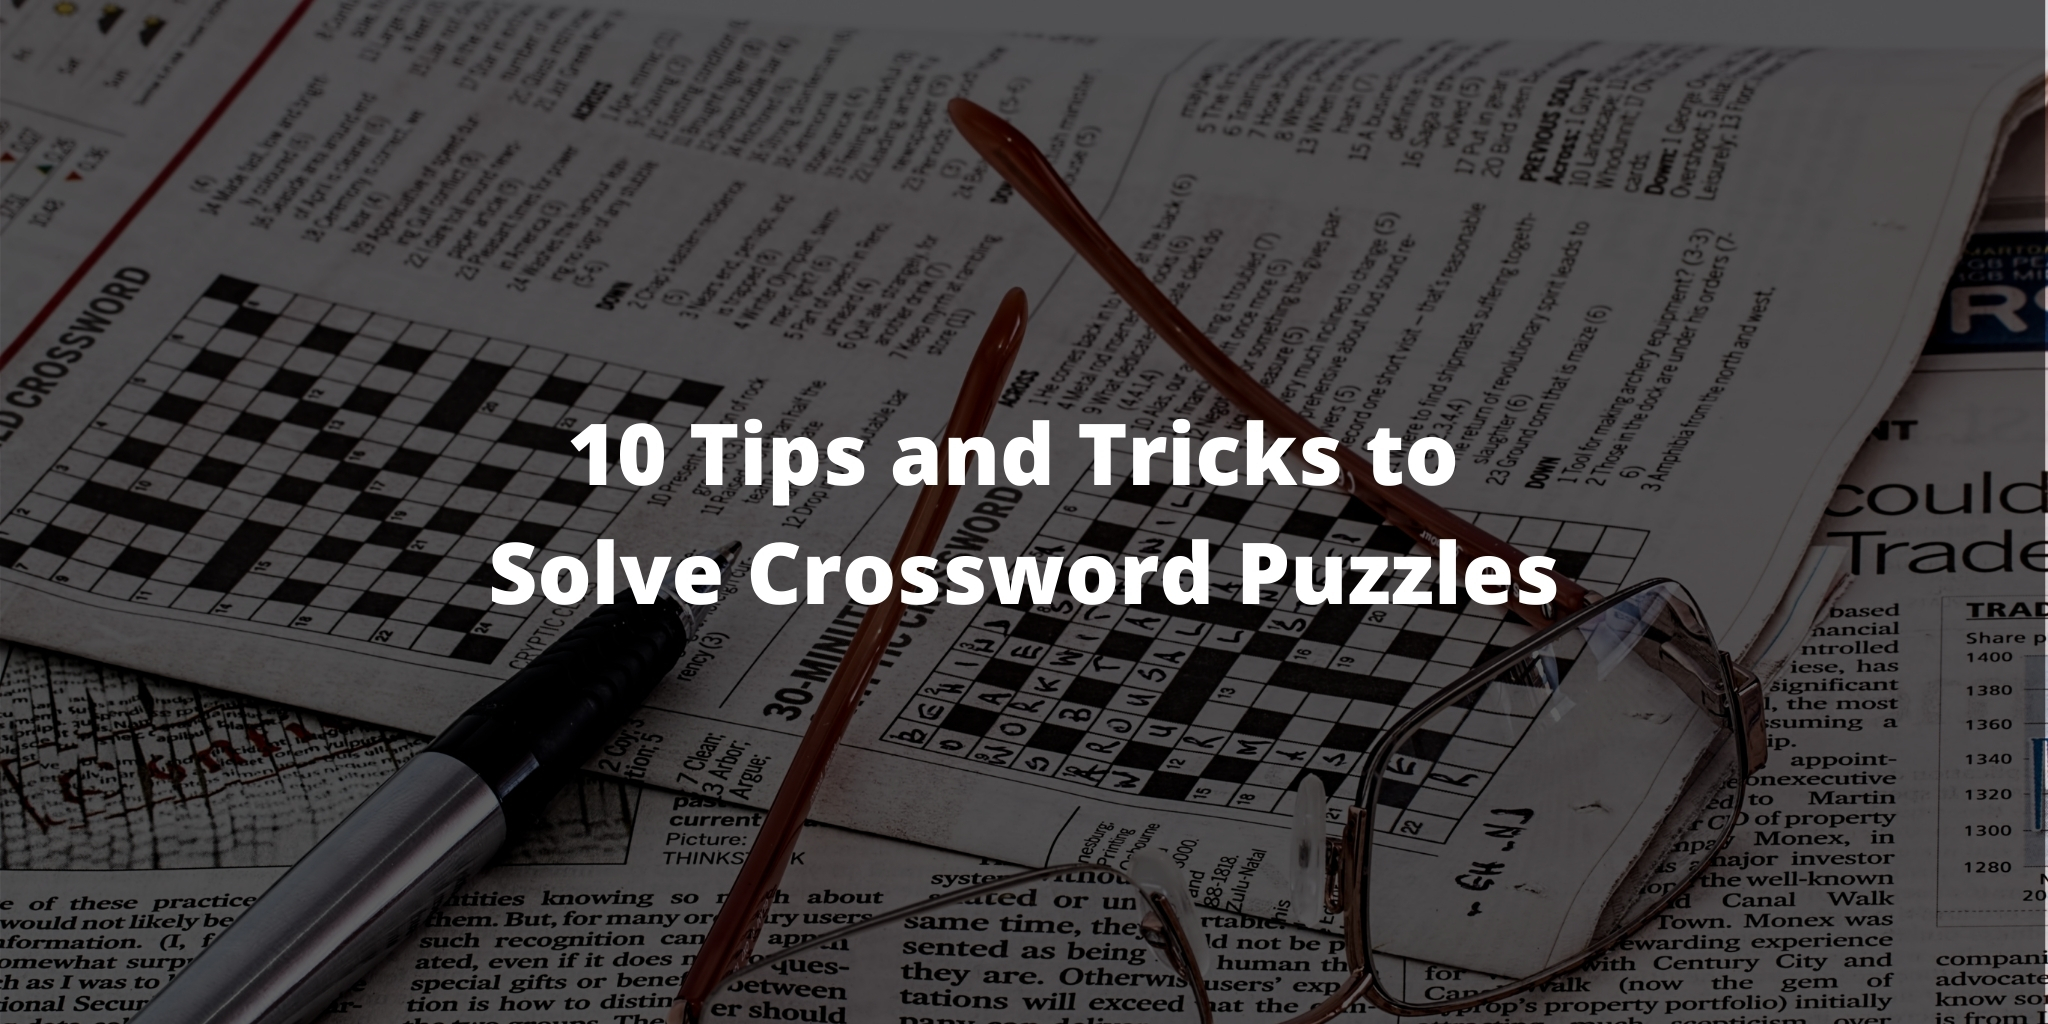 10 Tips and Tricks to Solve Crossword Puzzles